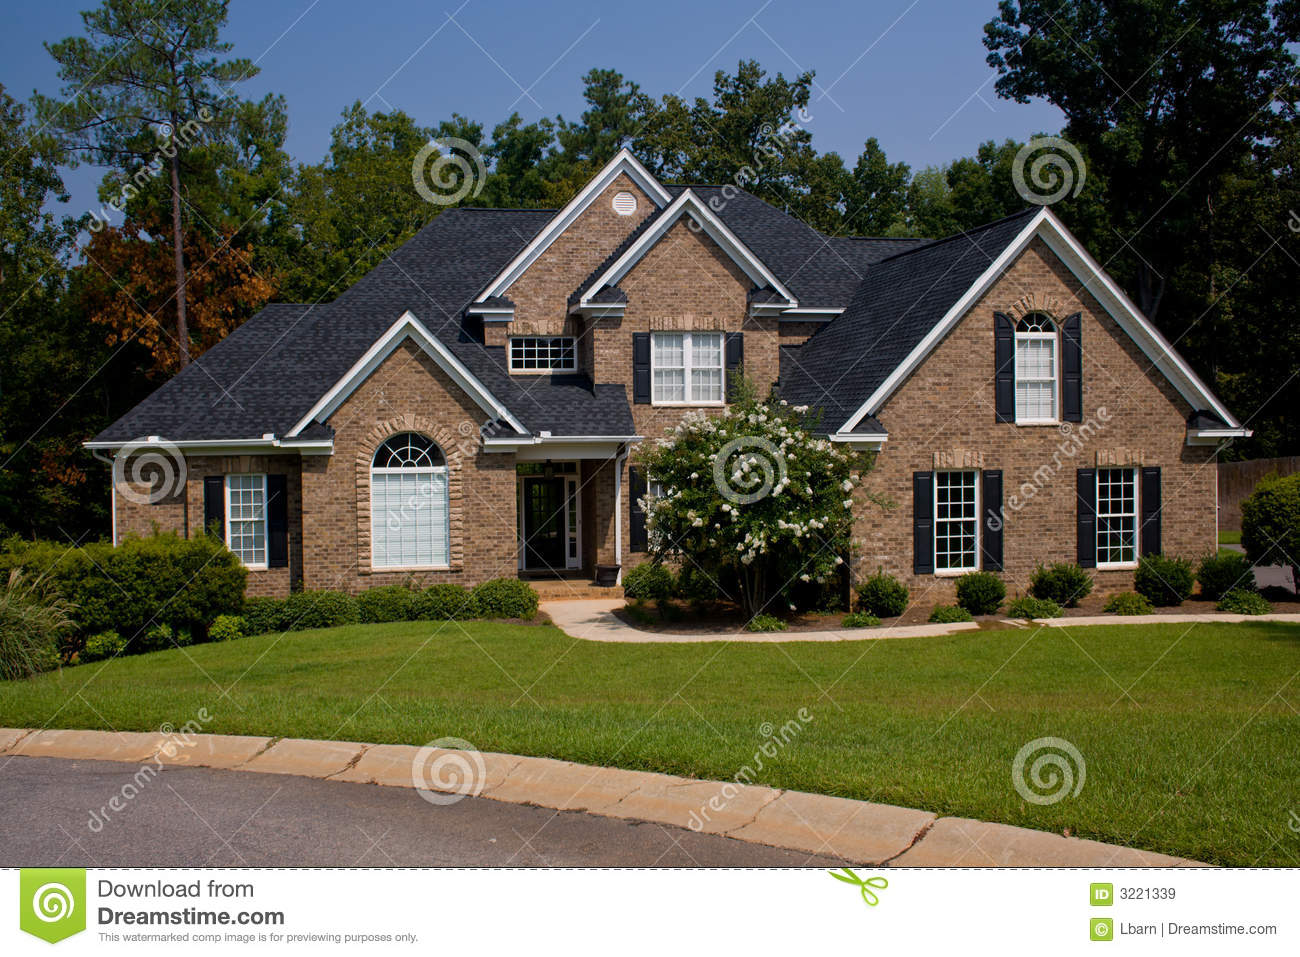 custom brick home royalty free stock images image 3221339